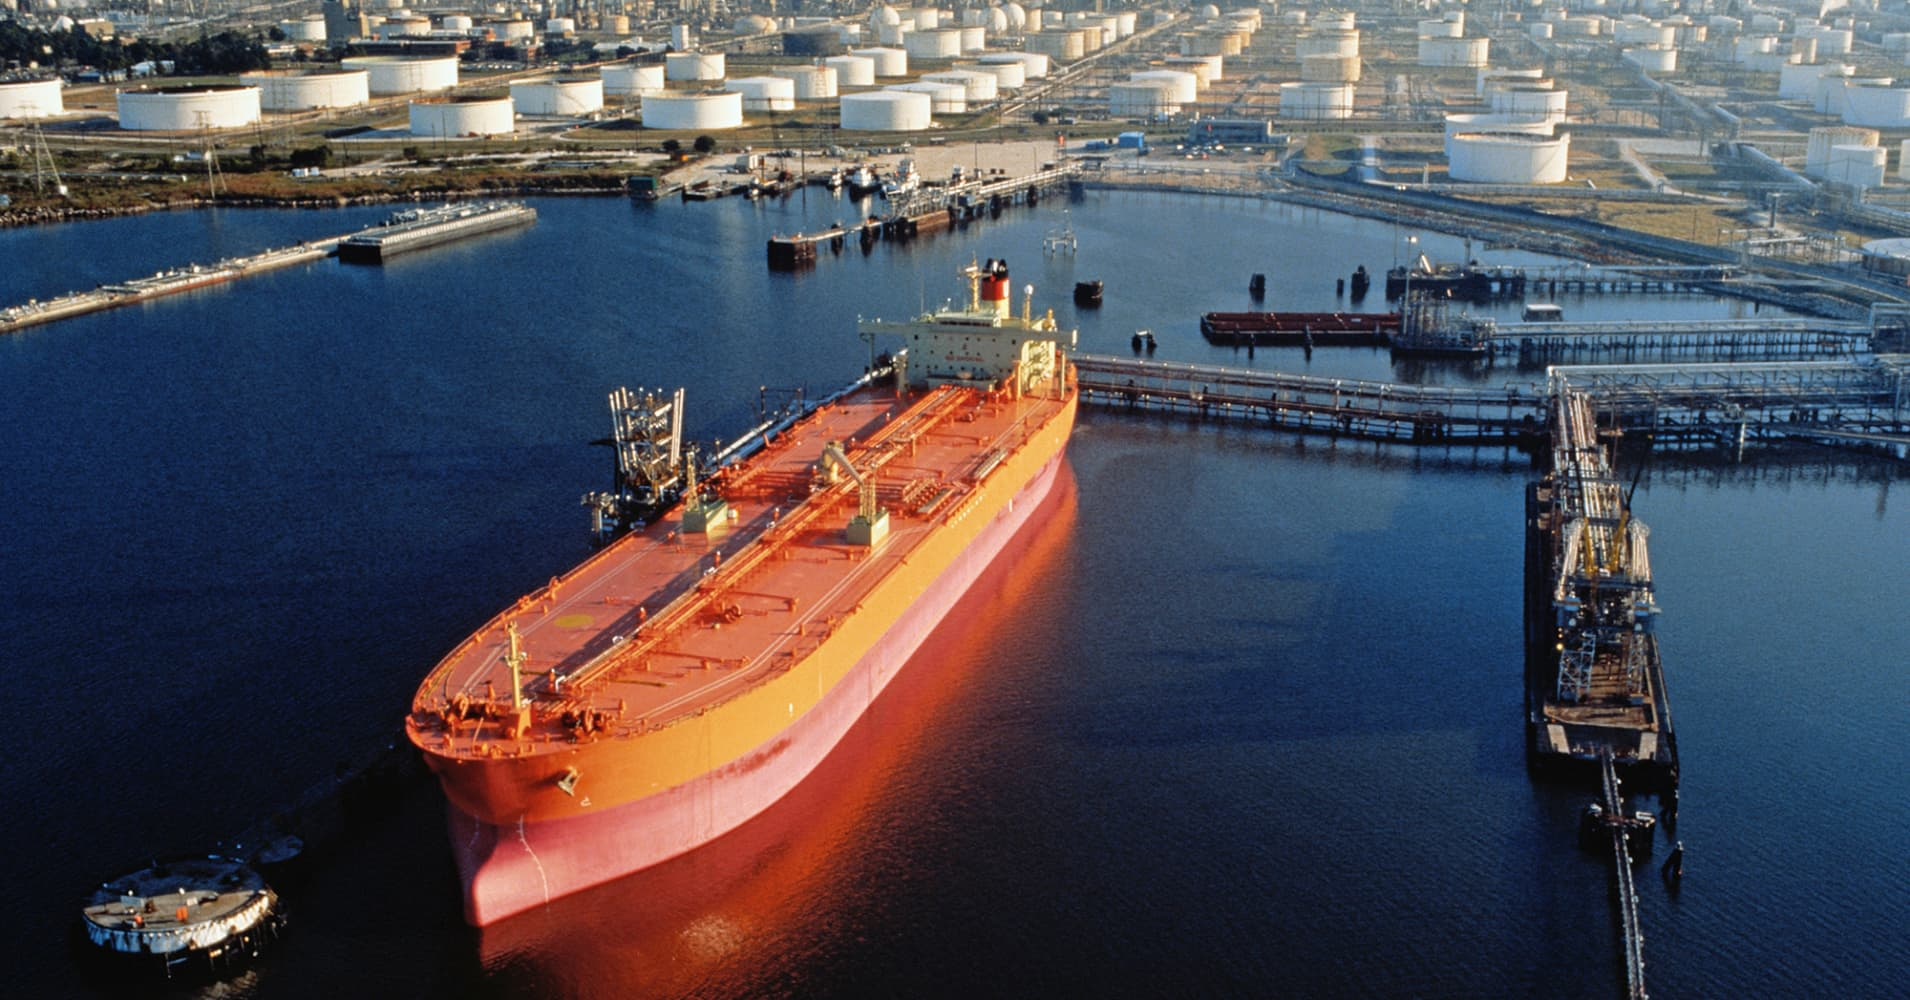 http://fm.cnbc.com/applications/cnbc.com/resources/img/editorial/2015/04/17/102597537-oil-tanker.1910x1000.jpg